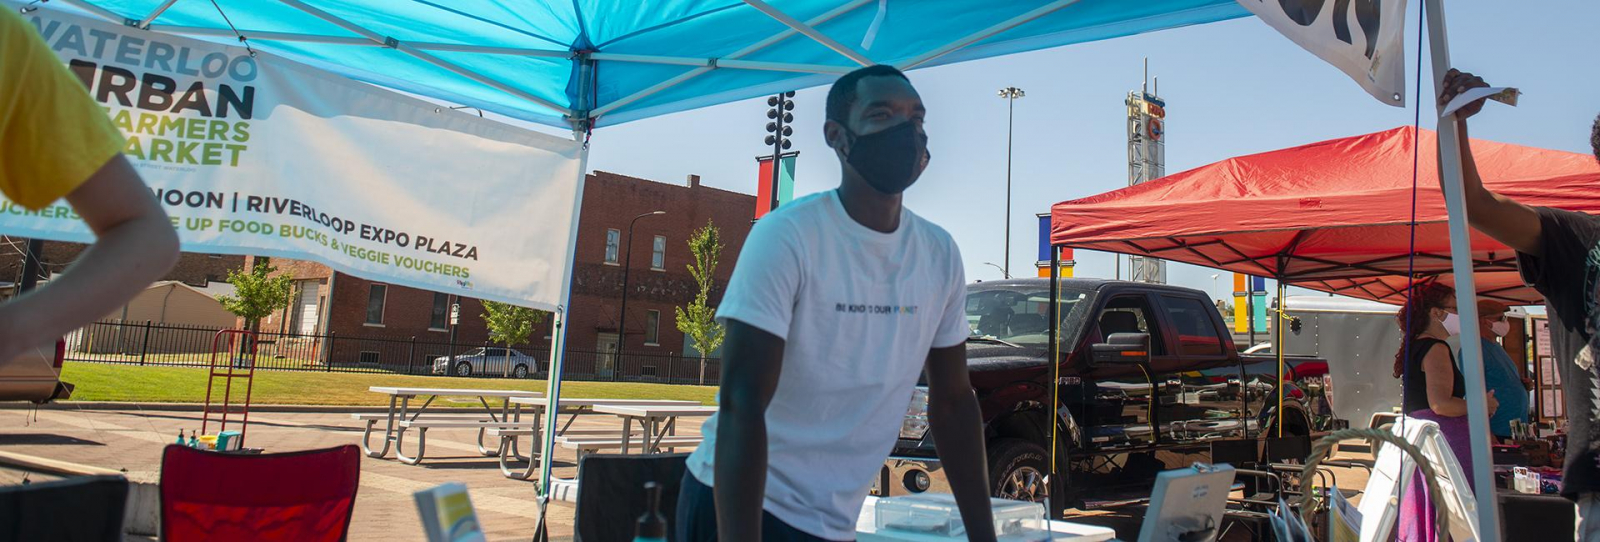 DaQuan Campbell in a white shirt and black mask at a farmer's market